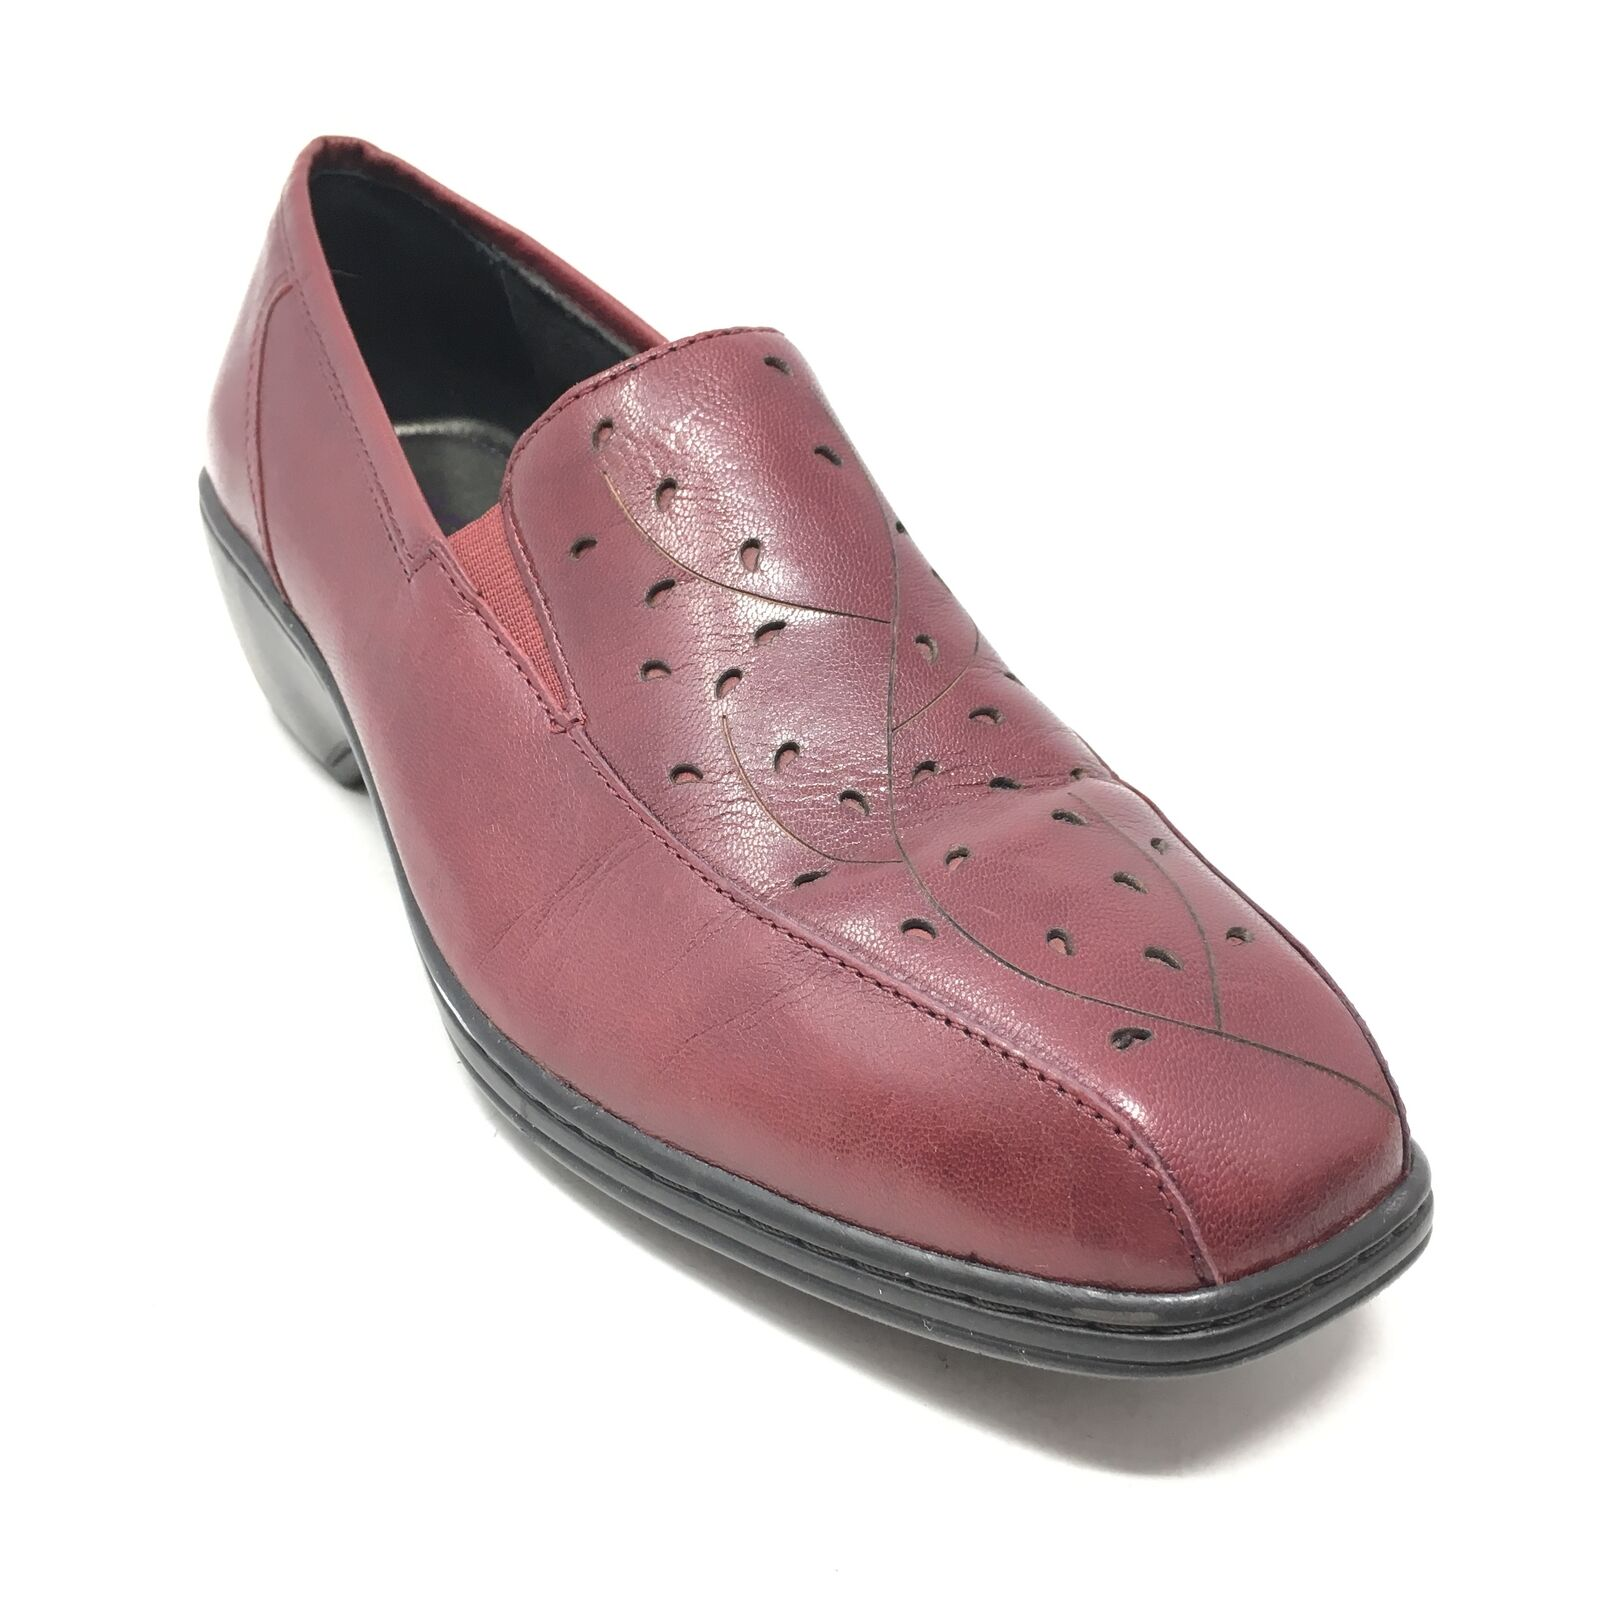 Women's Aravon Kiley Clogs Loafers Shoes Size 8.5 Burgundy Leather Casual E2